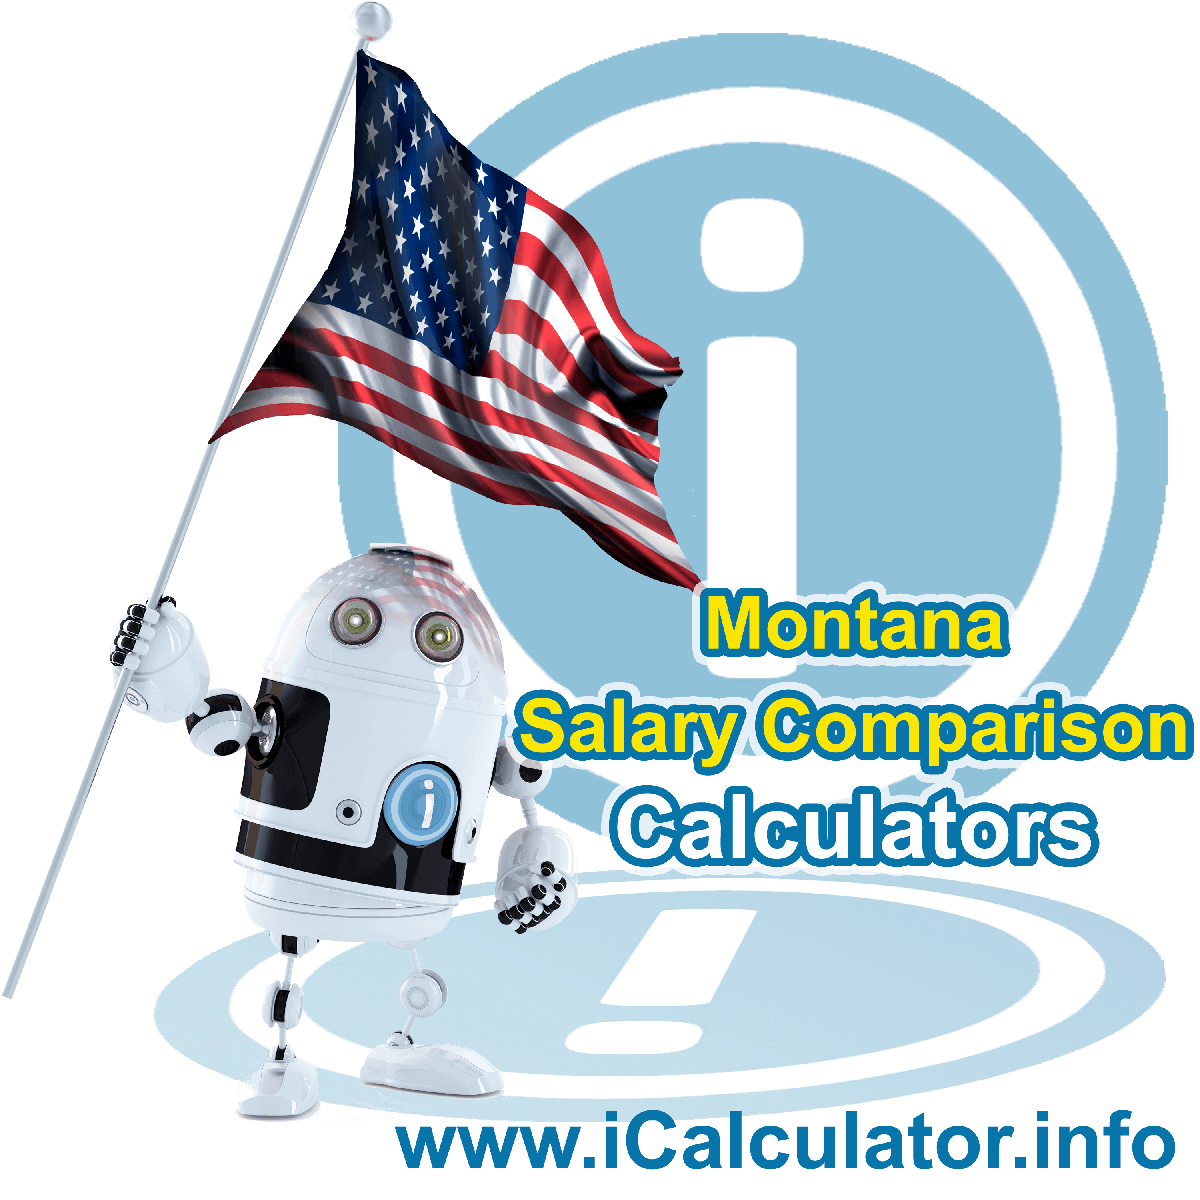 Montana Salary Comparison Calculator 2019 | iCalculator | The Montana Salary Comparison Calculator allows you to quickly calculate and compare upto 6 salaries in Montana or between other states for the 2019 tax year and historical tax years. Its an excellent tool for jobseekers, pay raise comparison and comparison of salaries between different US States